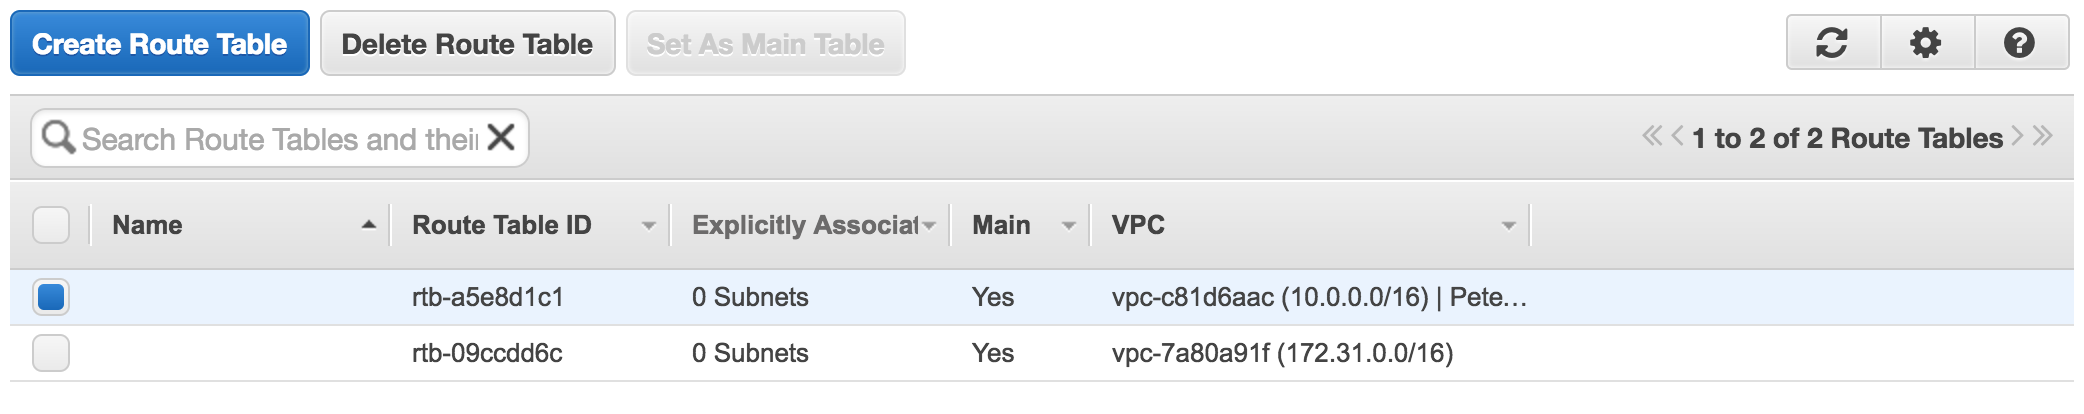 VPC Route Table Overview